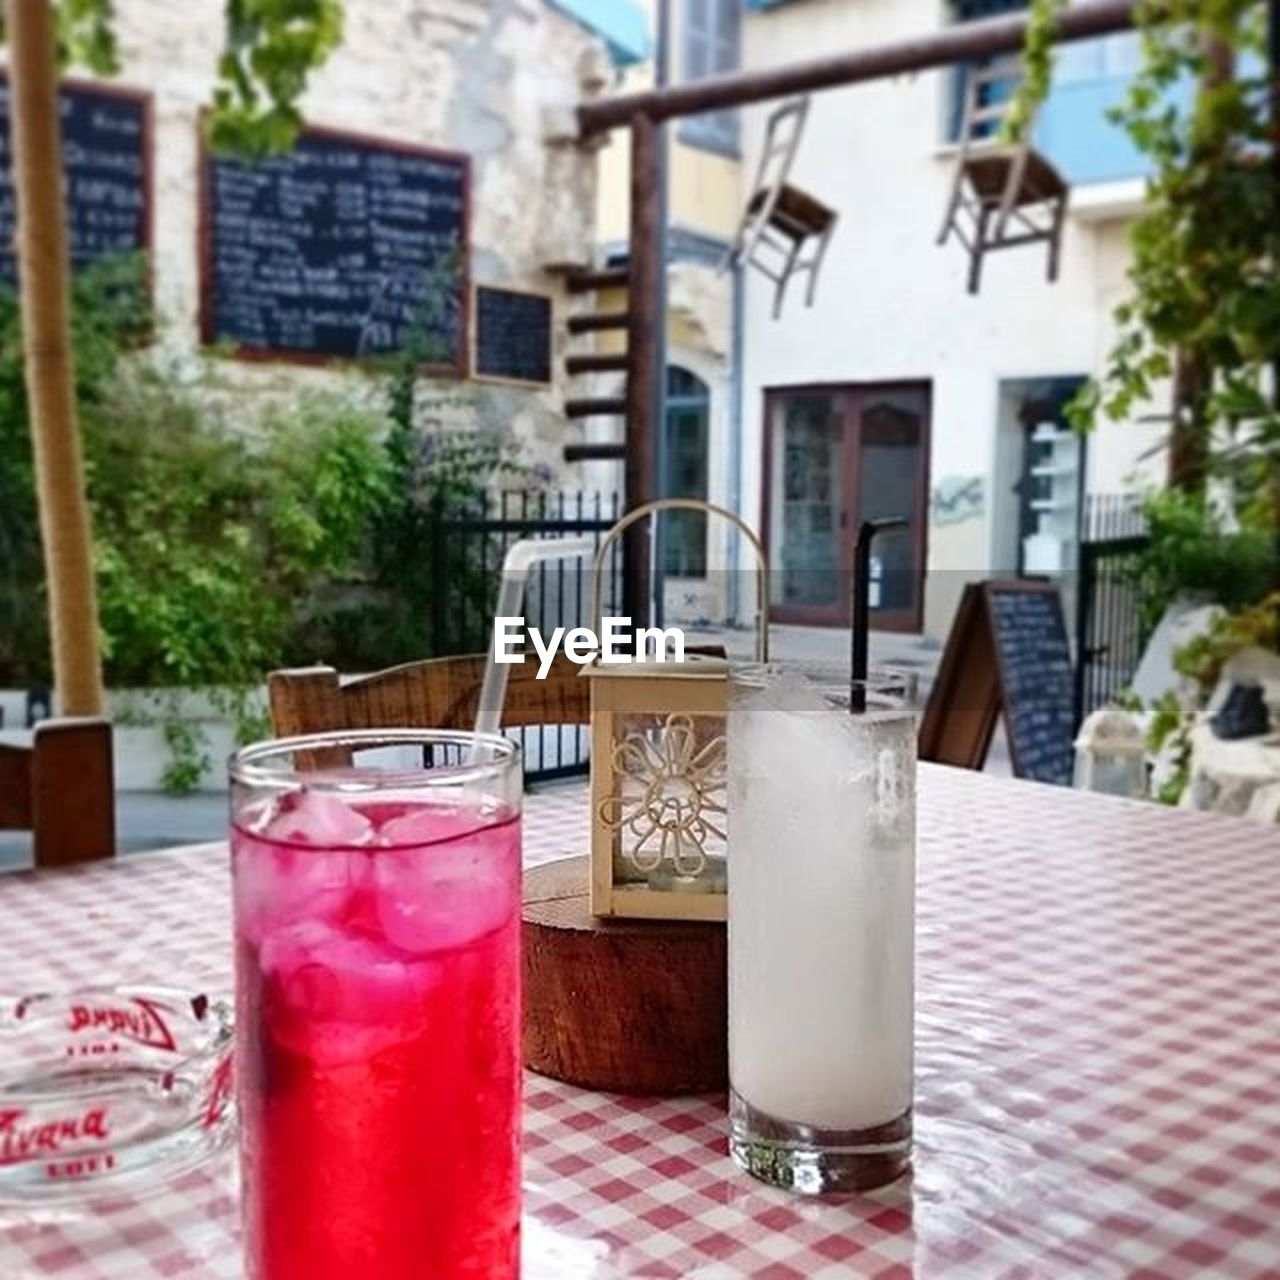 refreshment, drink, drinking glass, table, food and drink, no people, drinking straw, focus on foreground, architecture, day, outdoors, building exterior, cafe, close-up, red, water, freshness